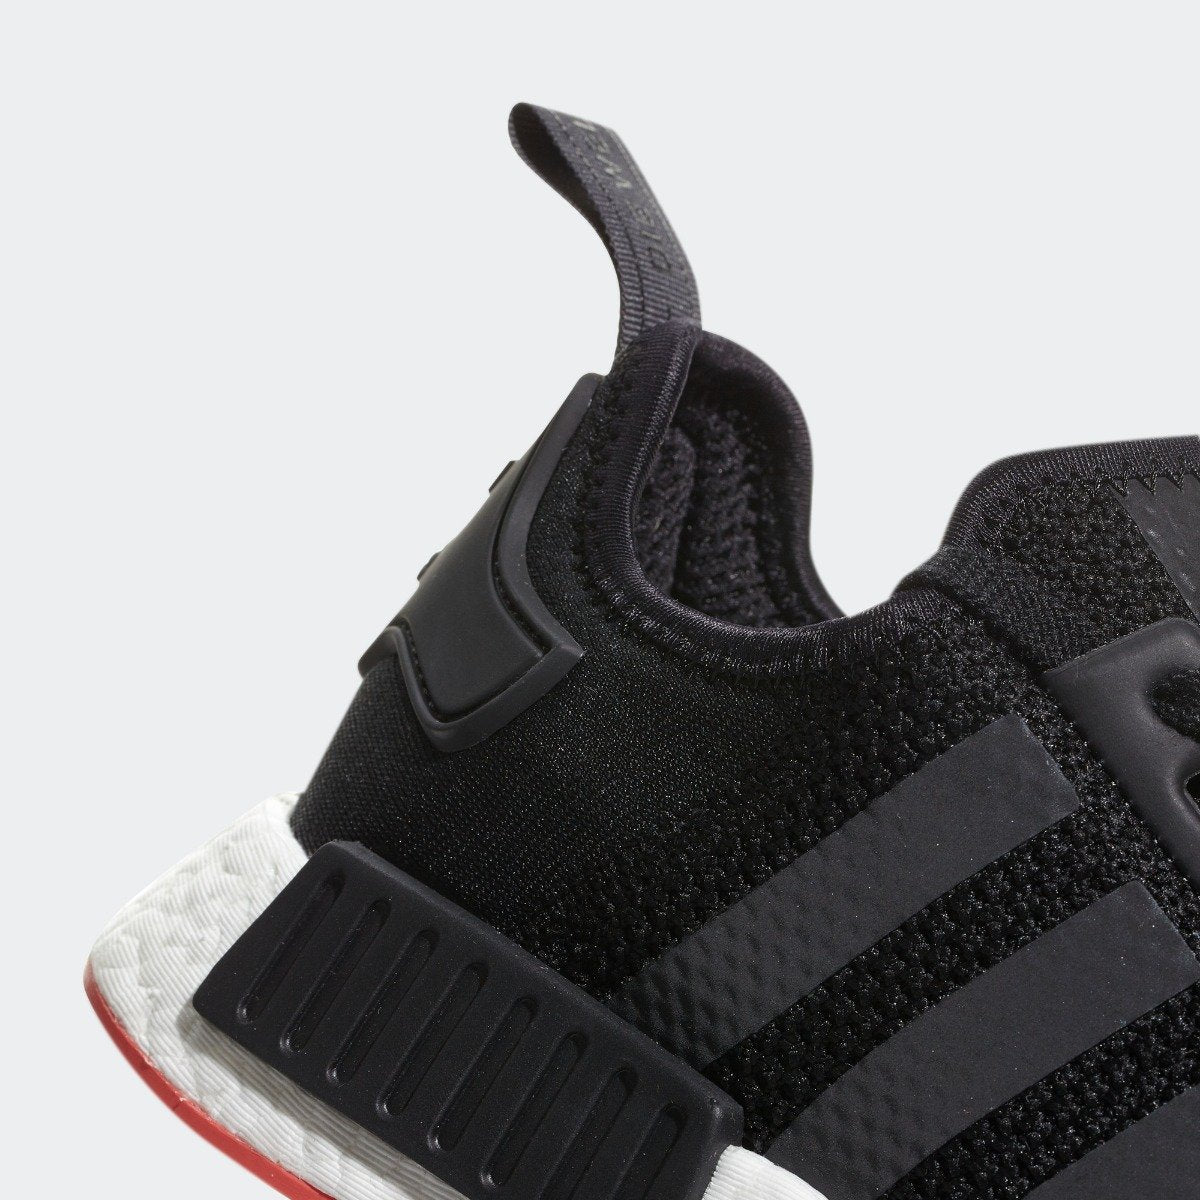 044f90a54f5c1 Men s adidas Originals NMD R1 Shoes Core Black with Trace Scarlet ...